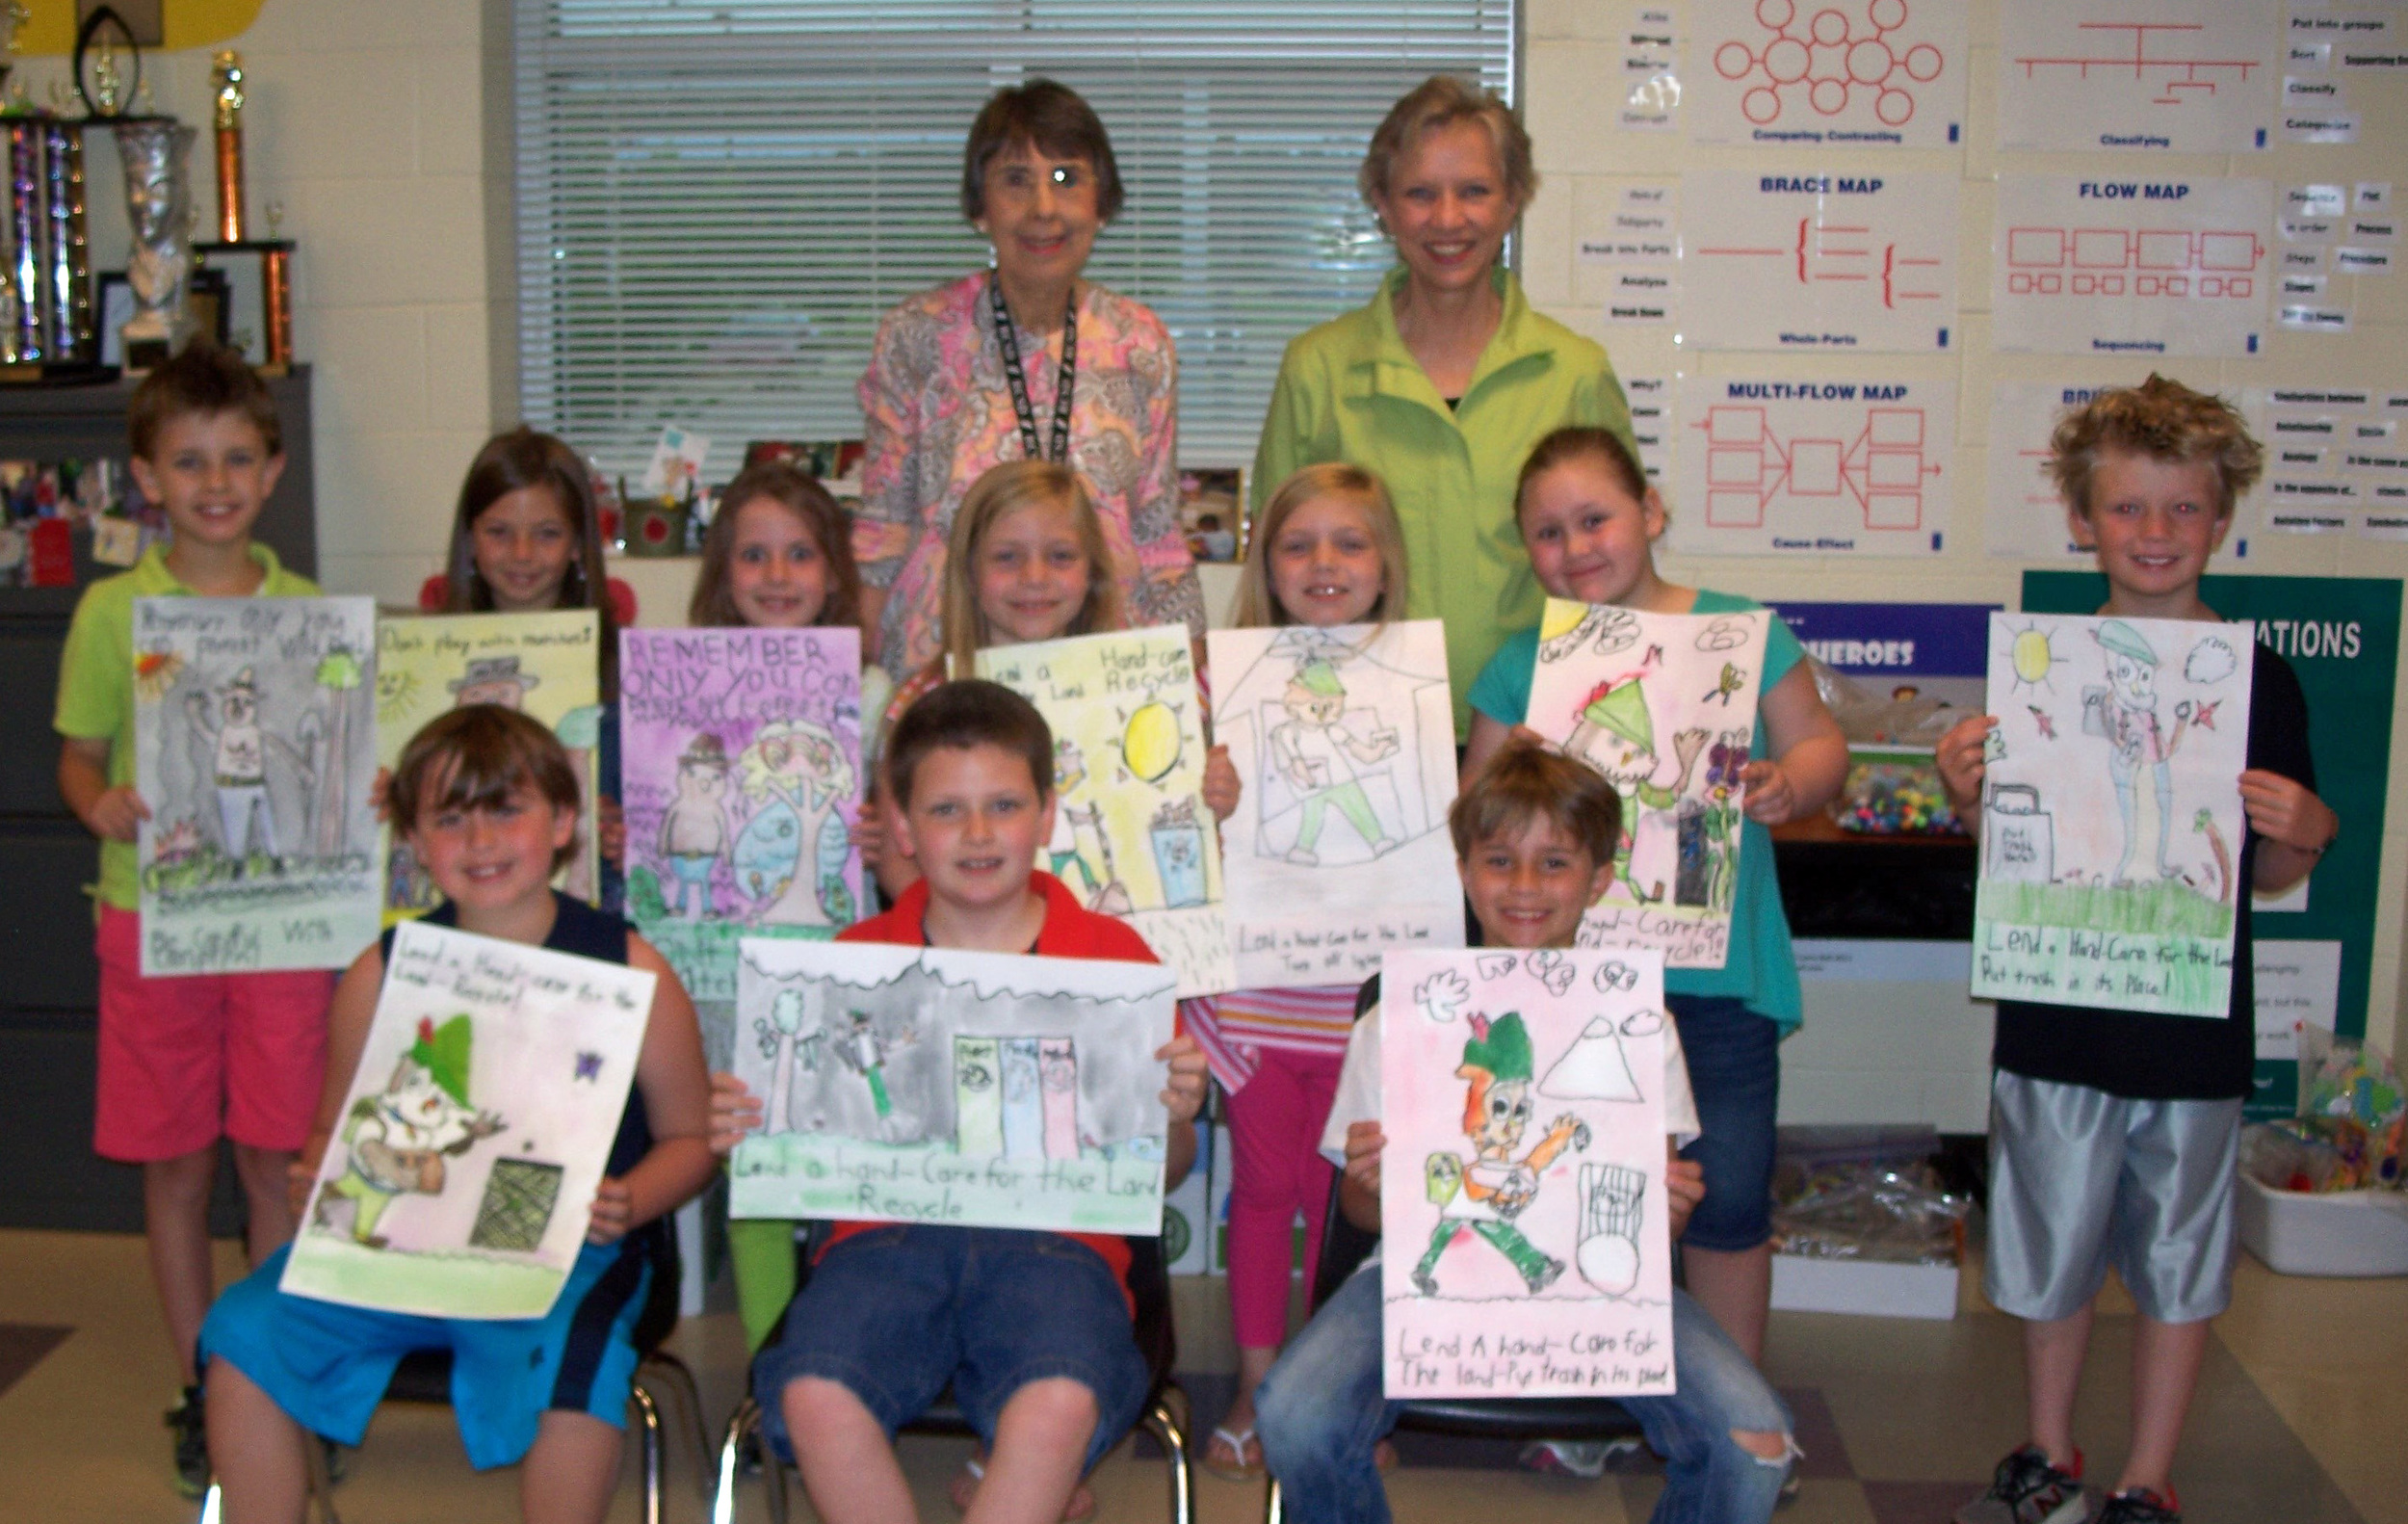 First row (l to r): Carter Traywick, 1 st place; Bennett Ciaravine, 2nd place; and Connor Cone, 3rd place. Second row (l to r), honorable mention: Hayden Smith, Valerie Harrell, Leslie Reeves, Carsen Flowers, Camden Flowers, Saydra Snider, and Cole Gordon. Third row (l to r): Venture teacher Janet Paczak and BGC Chairman Joan Alliston.